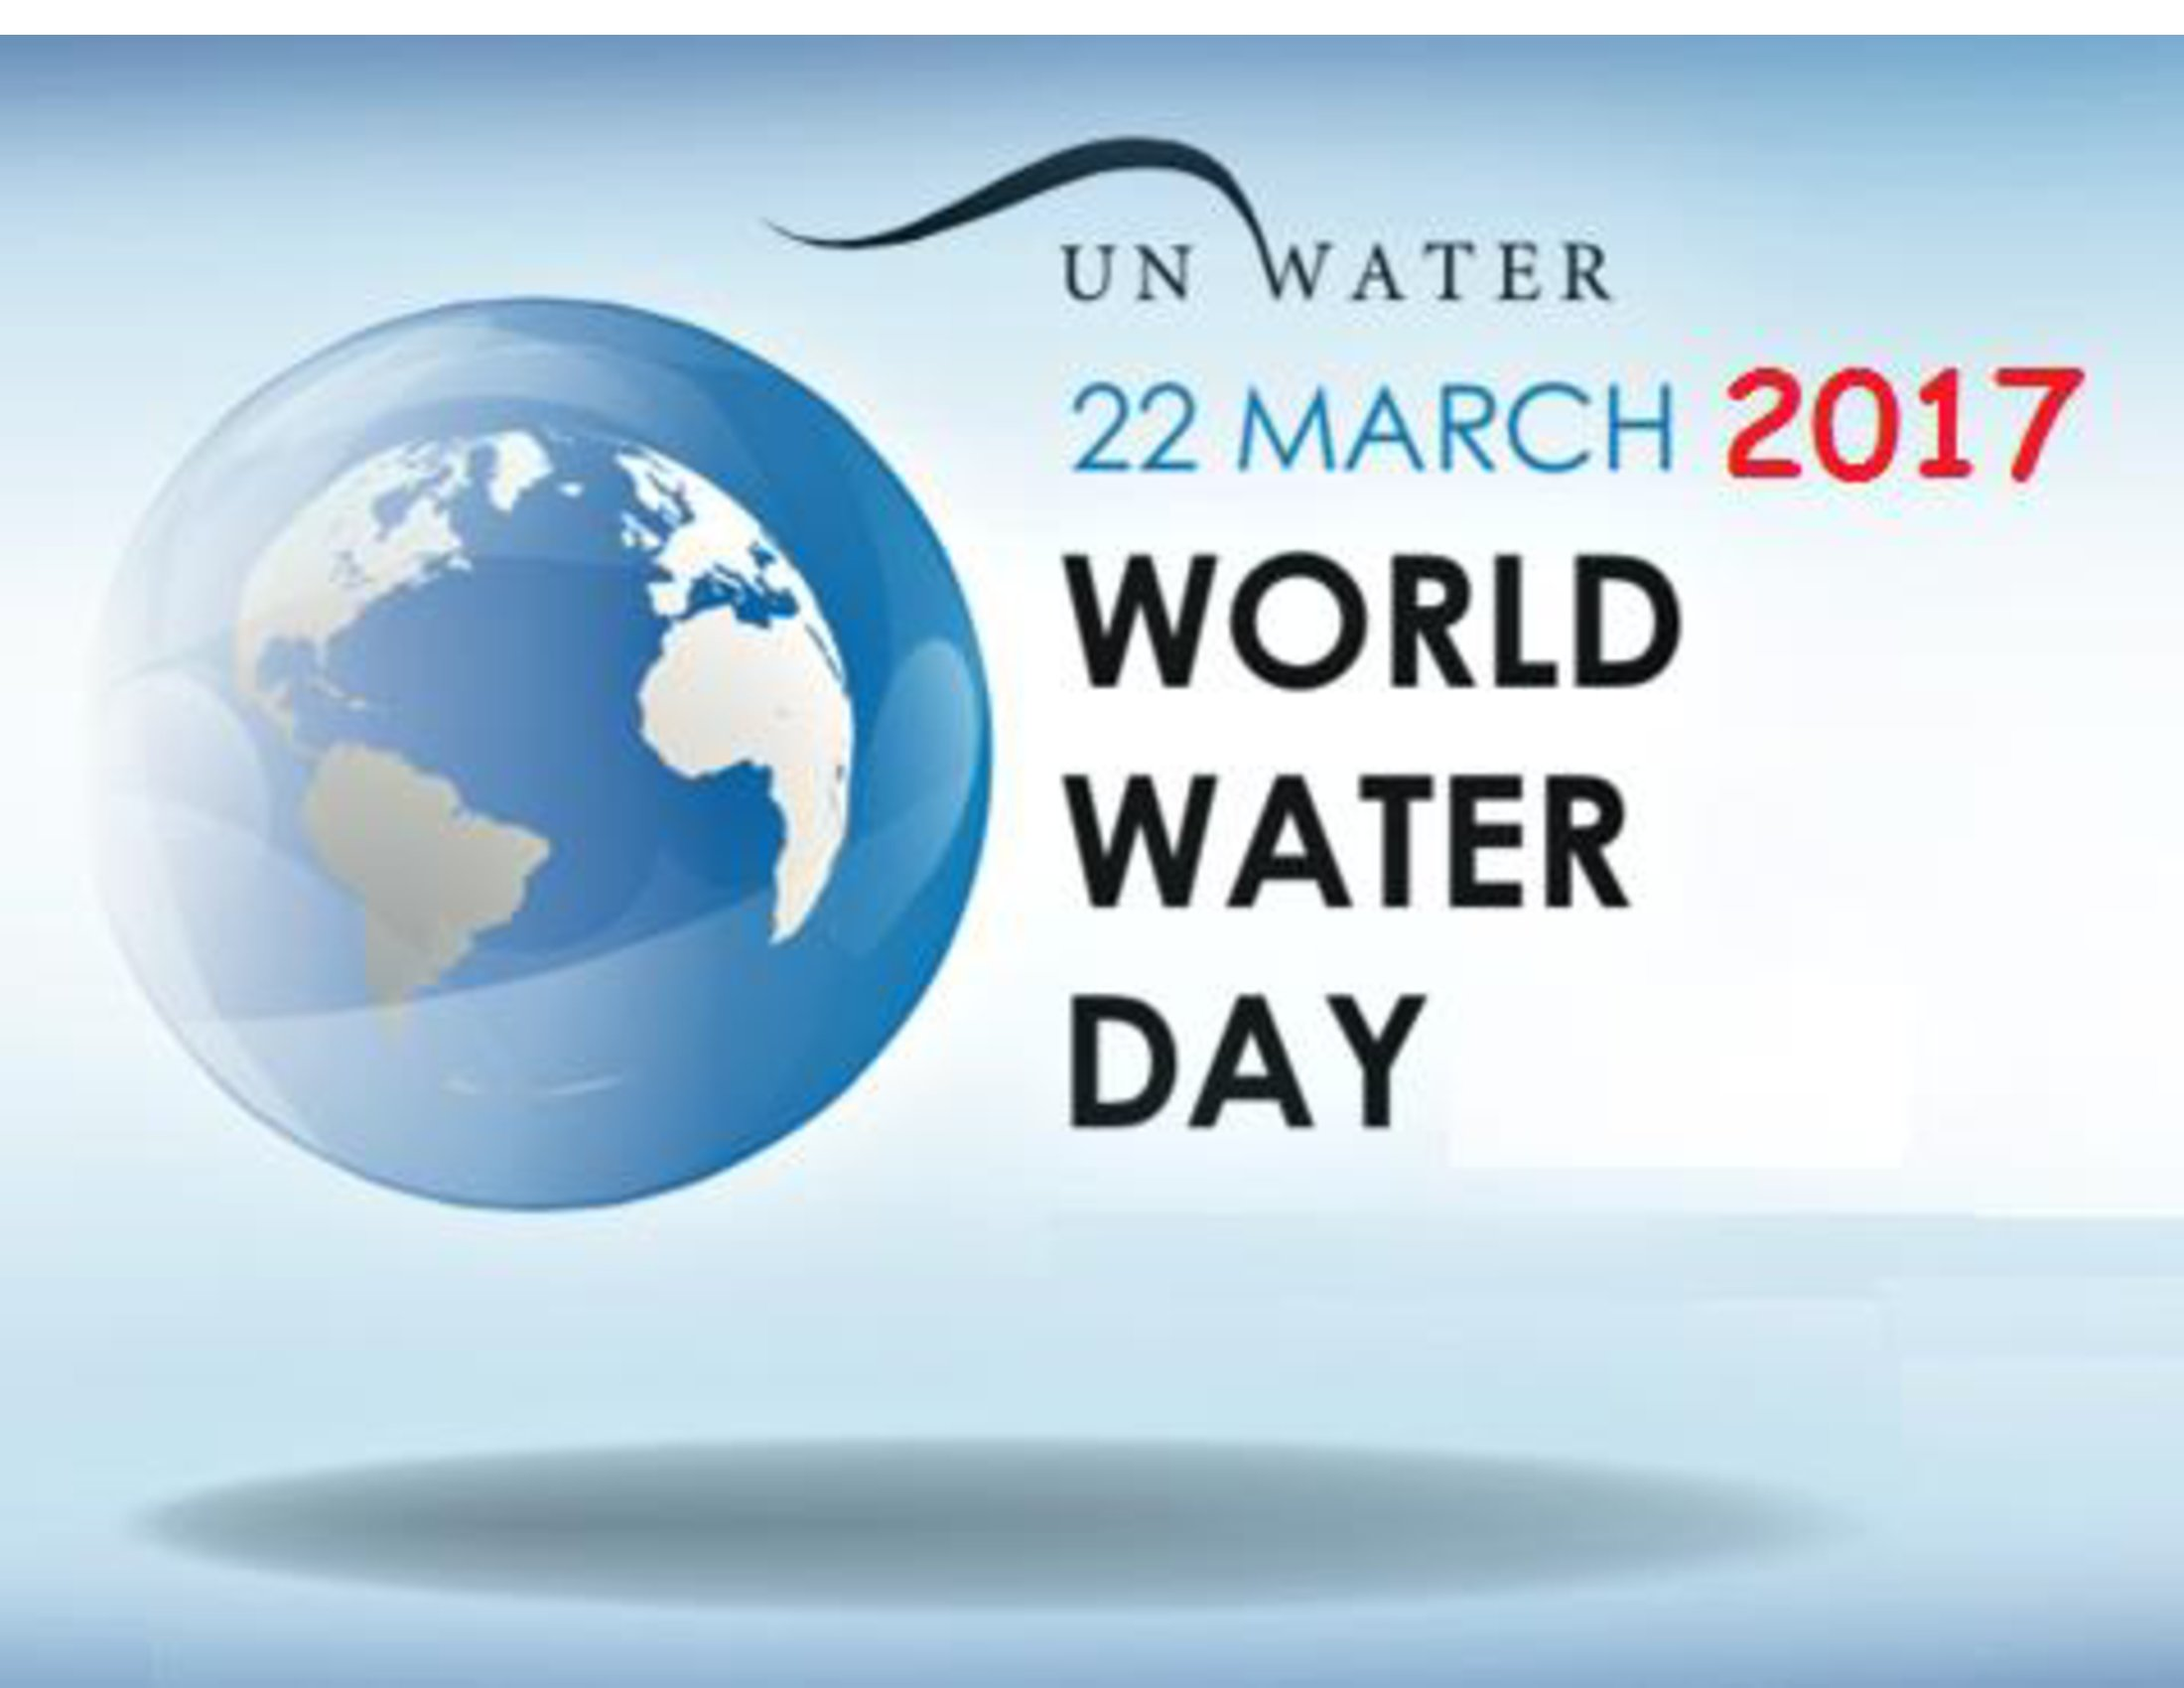 Reduce wasted water in honor of World Water Day